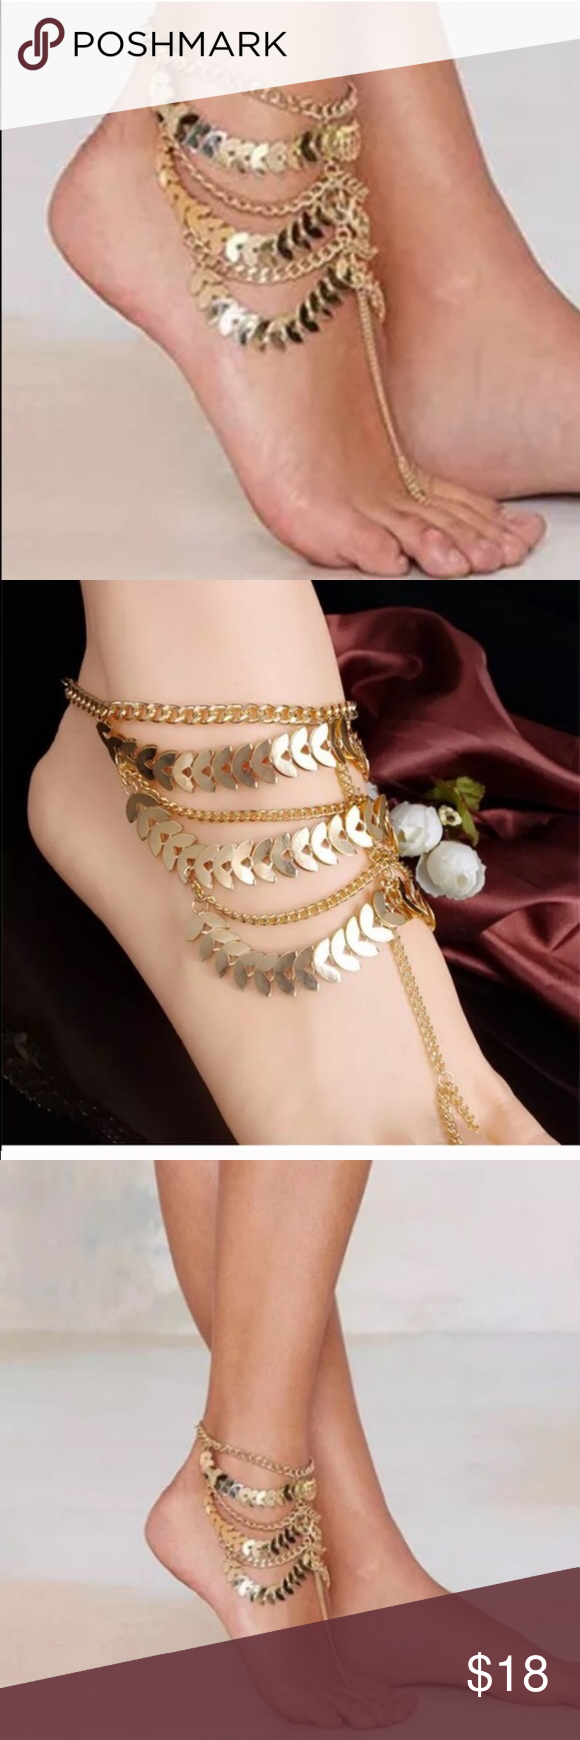 Gold Boho Indie Foot Sandal Swim Jewelry These are so beautiful I have a pair for myself!! I wouldn't recommend this if you wear more than an 8 1/2 shoe size. I can add extenders if needed for $2 for larger sizes💁🏼 PRICE is for PAIR!! Jewelry Bracelets